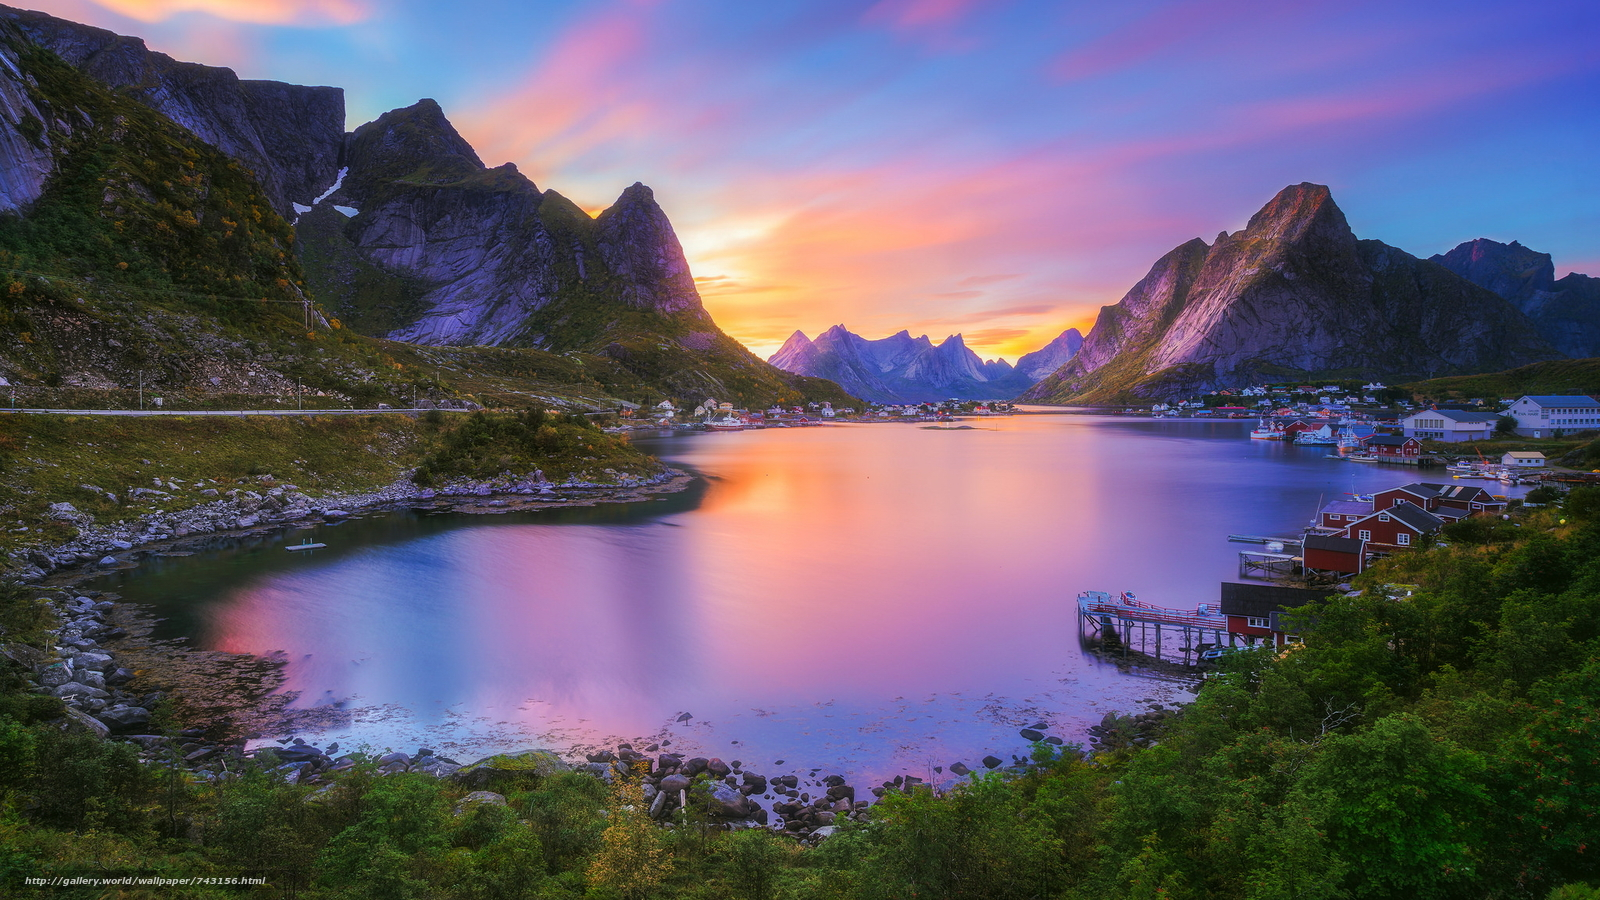 Lofoten, Norway, Lofoten, island, the mountains, rock, houses, water, sky, landscape, nature, view, summer, greenery, sunset, clouds, Coast